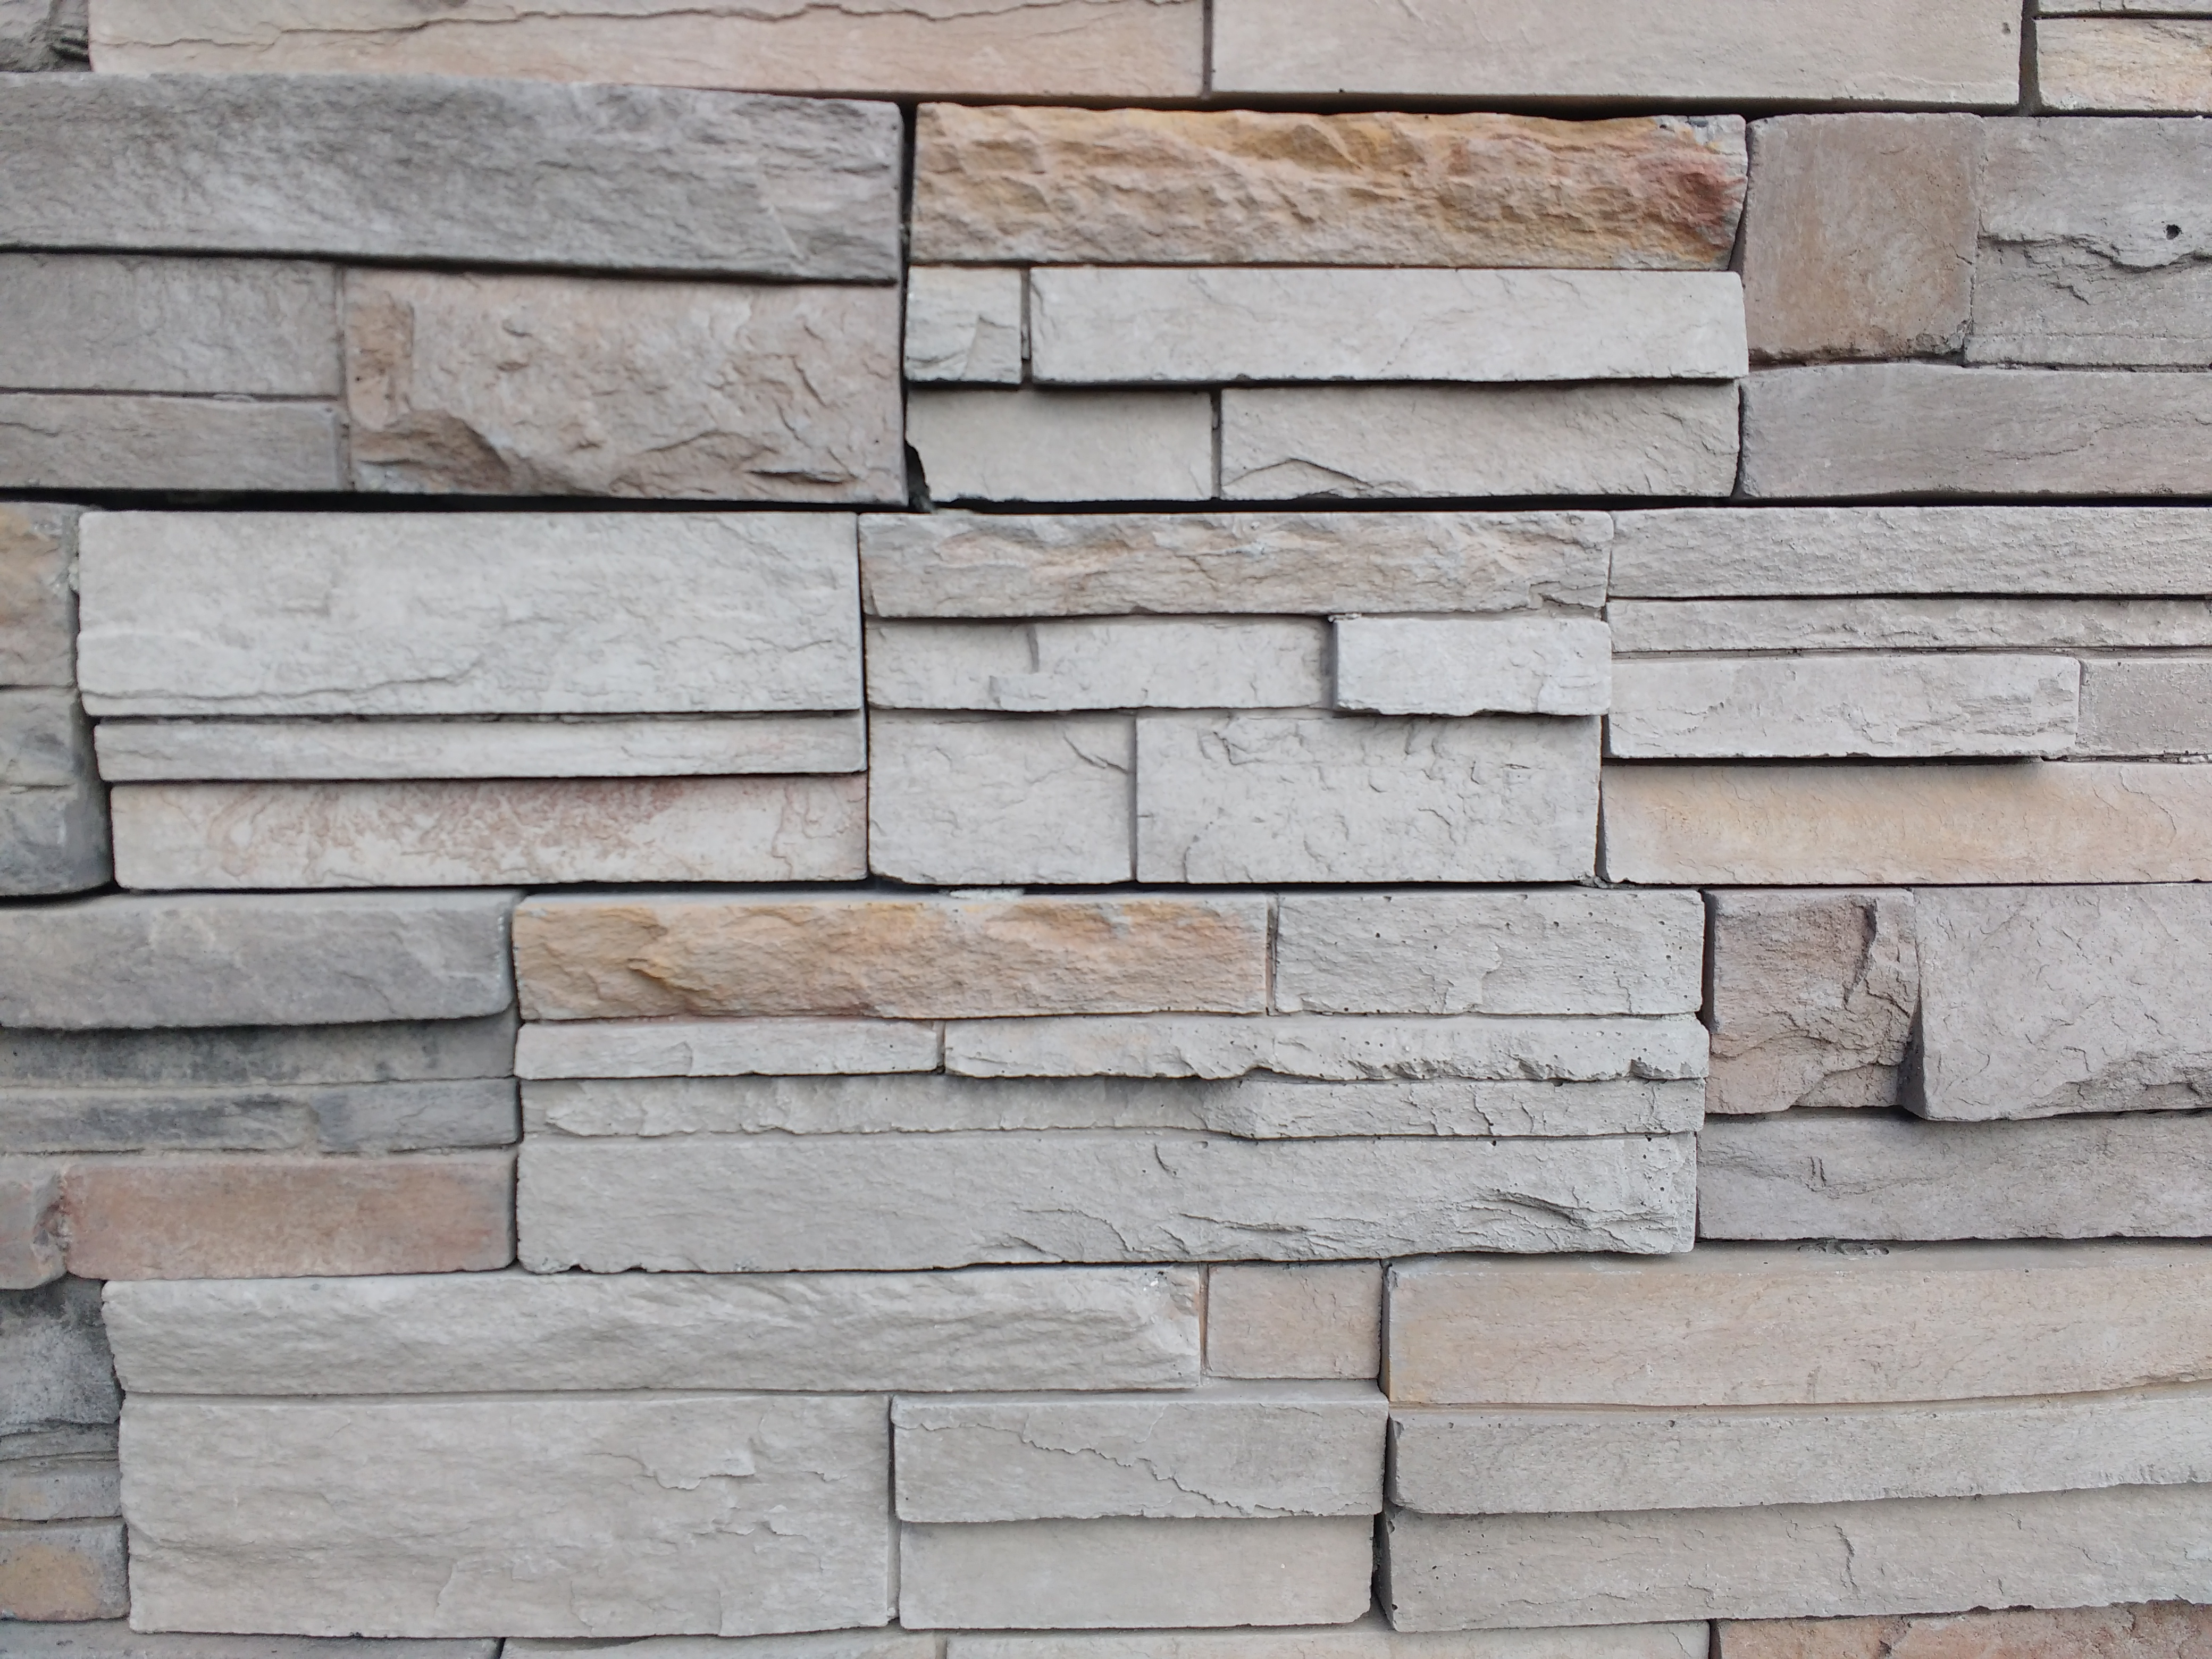 Gray Sandstone Wall Texture Picture Free Photograph